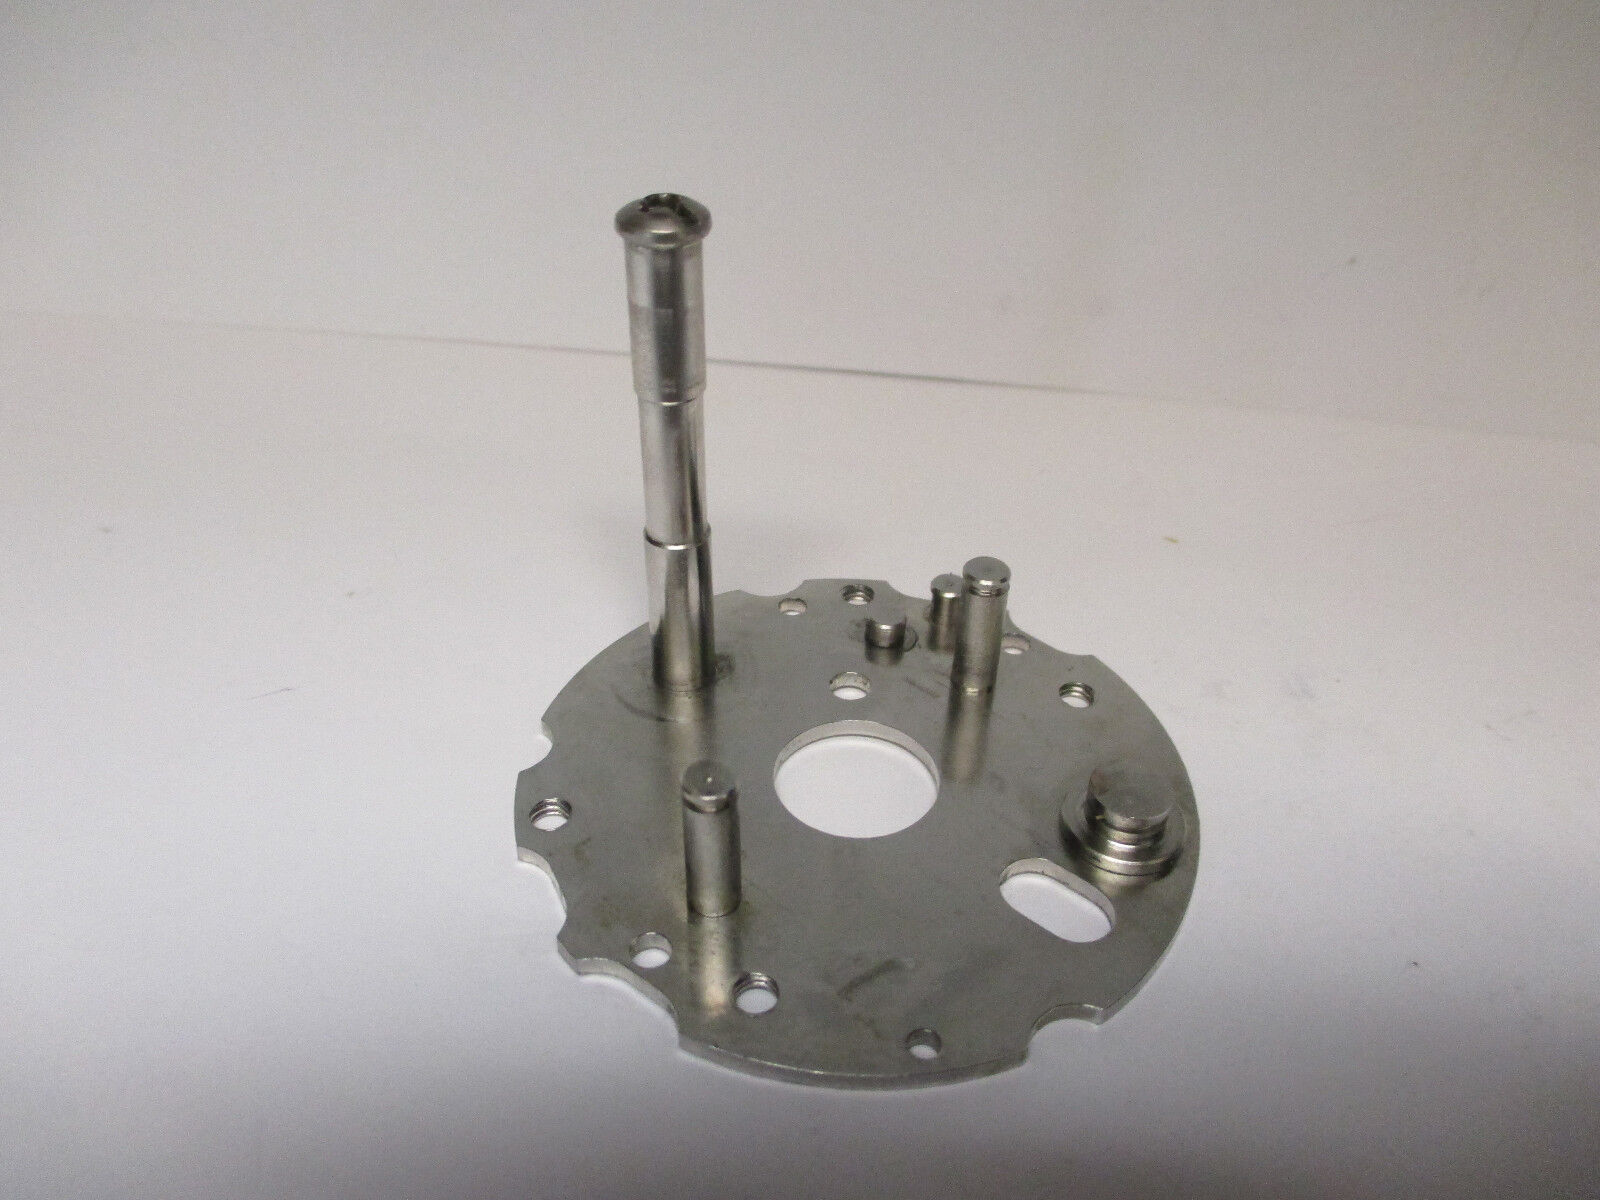 USED NEWELL CONVENTIONAL REEL PART - PR 220 5 - Bridge